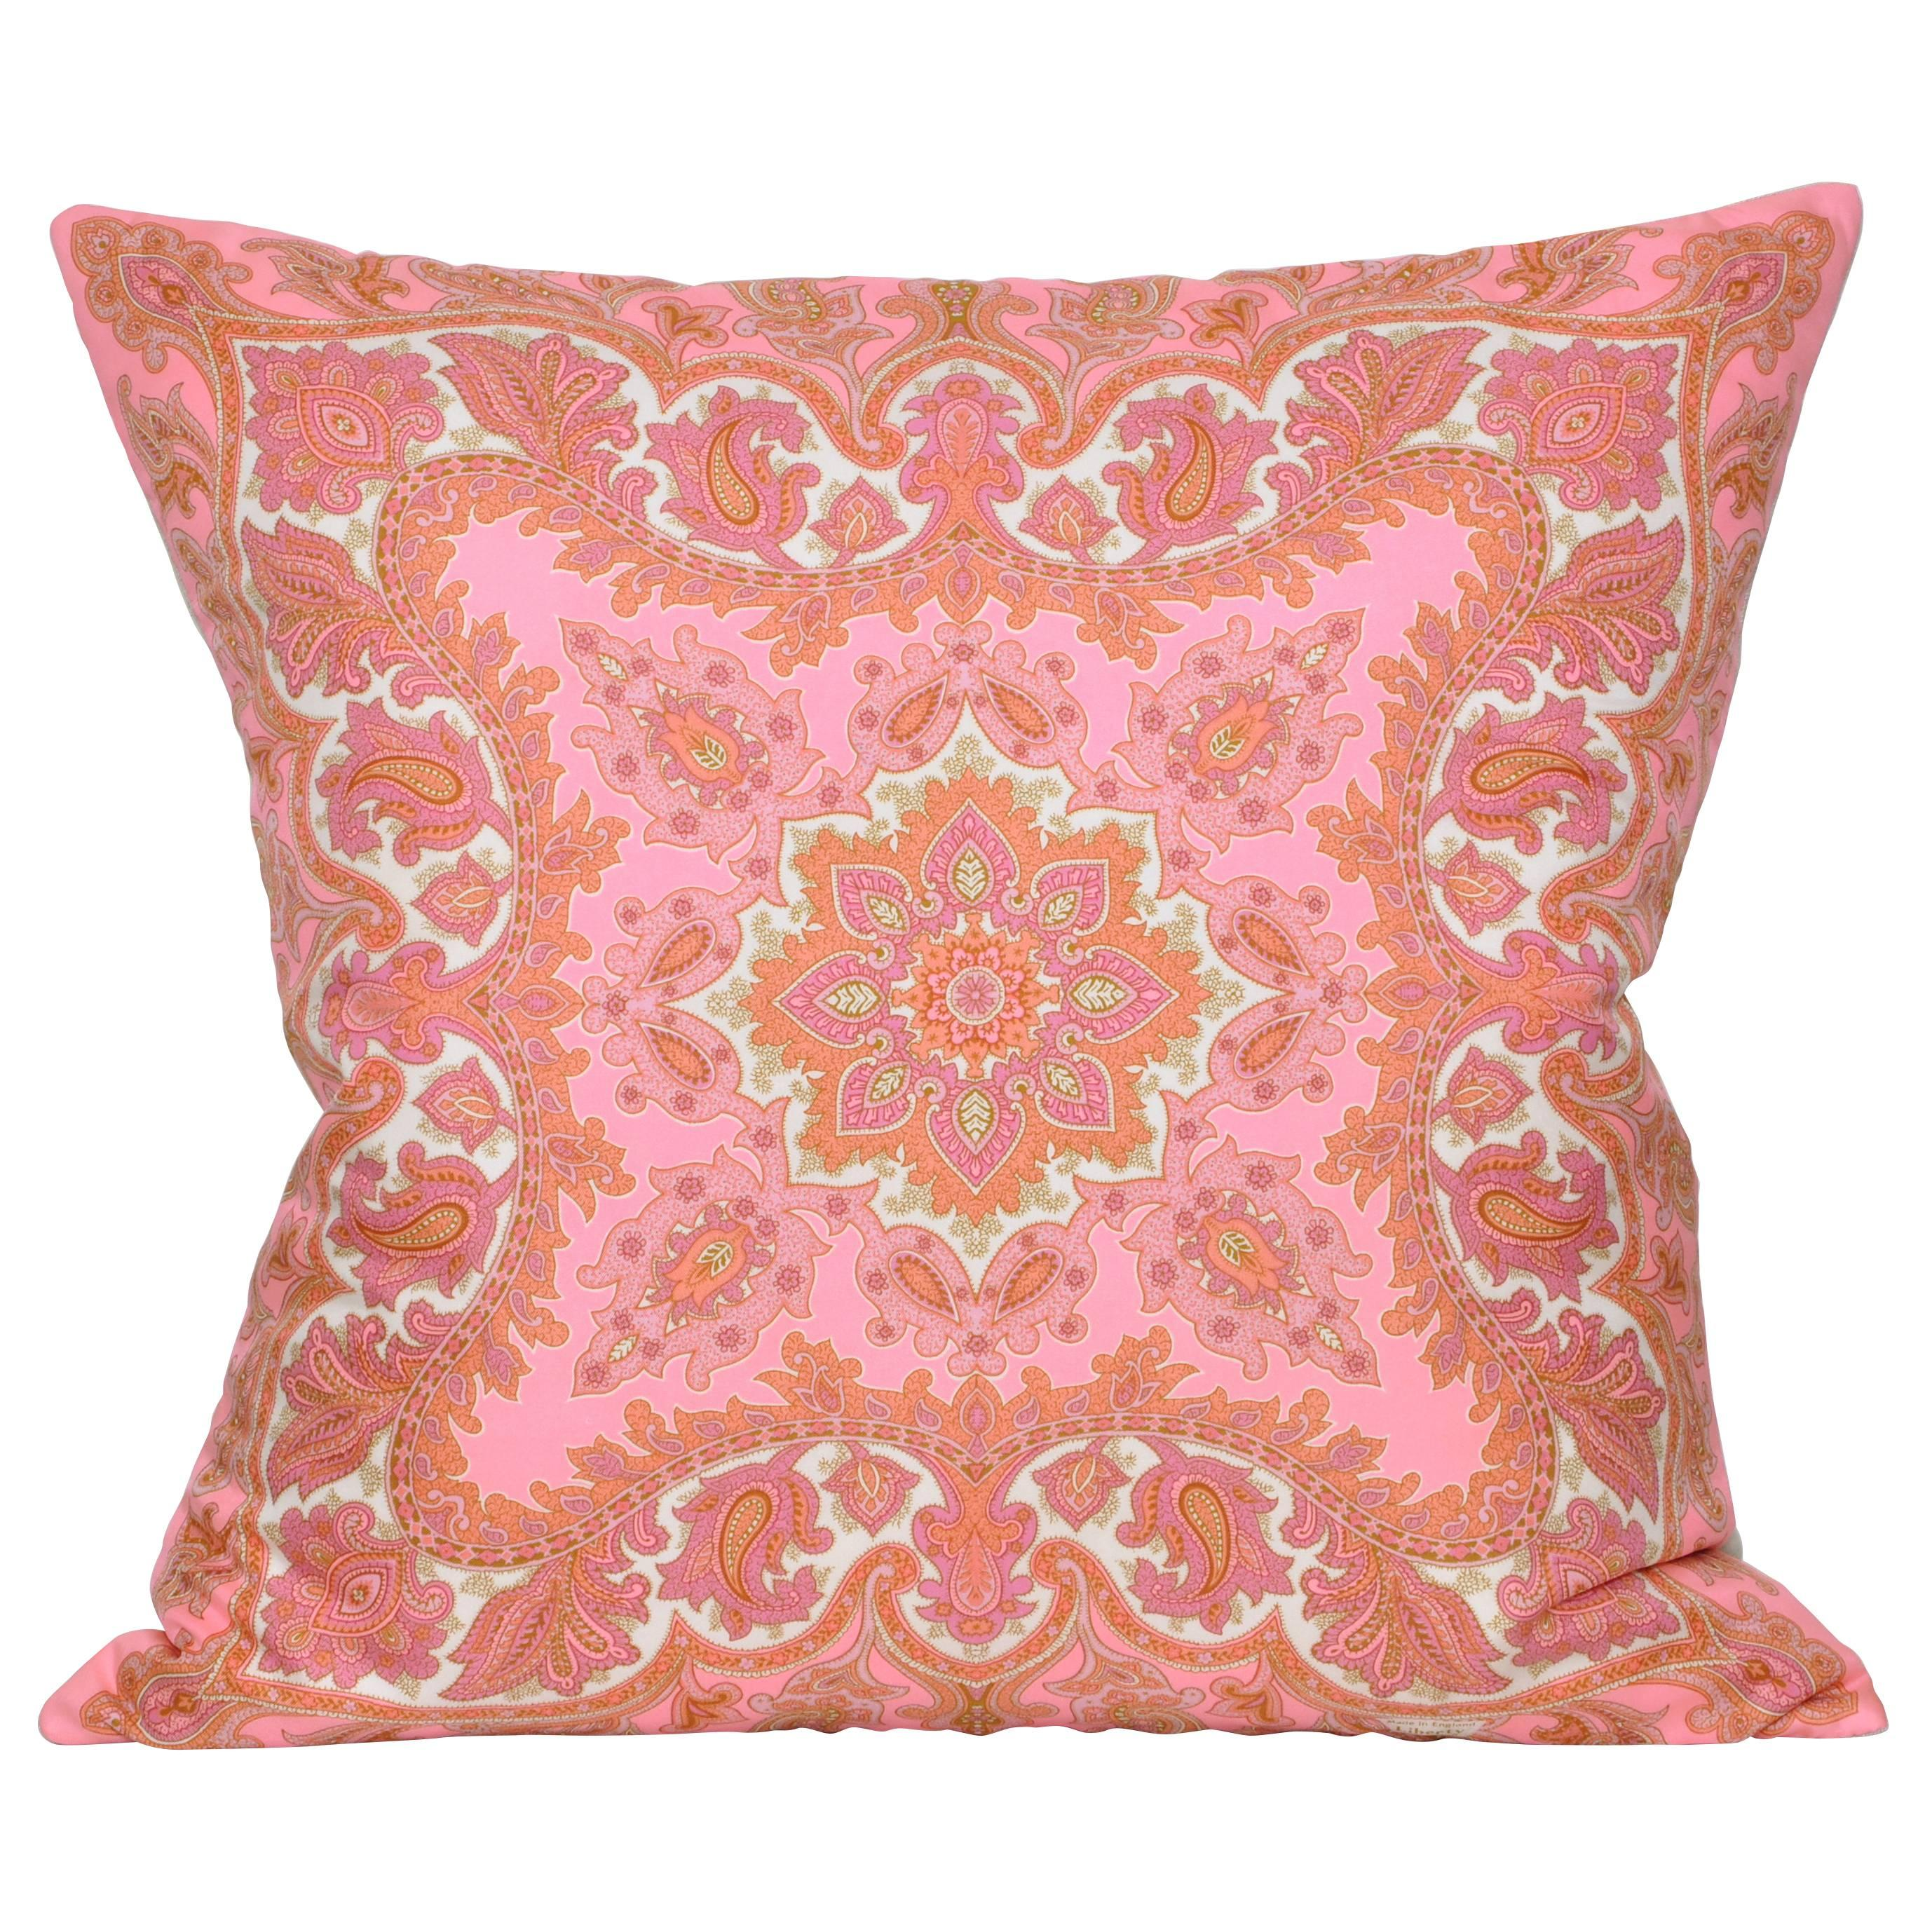 Sofa Throws Retro Hot Pink Bright Orange Retro Floral Vintage Geometric Fabric Cushion Collection